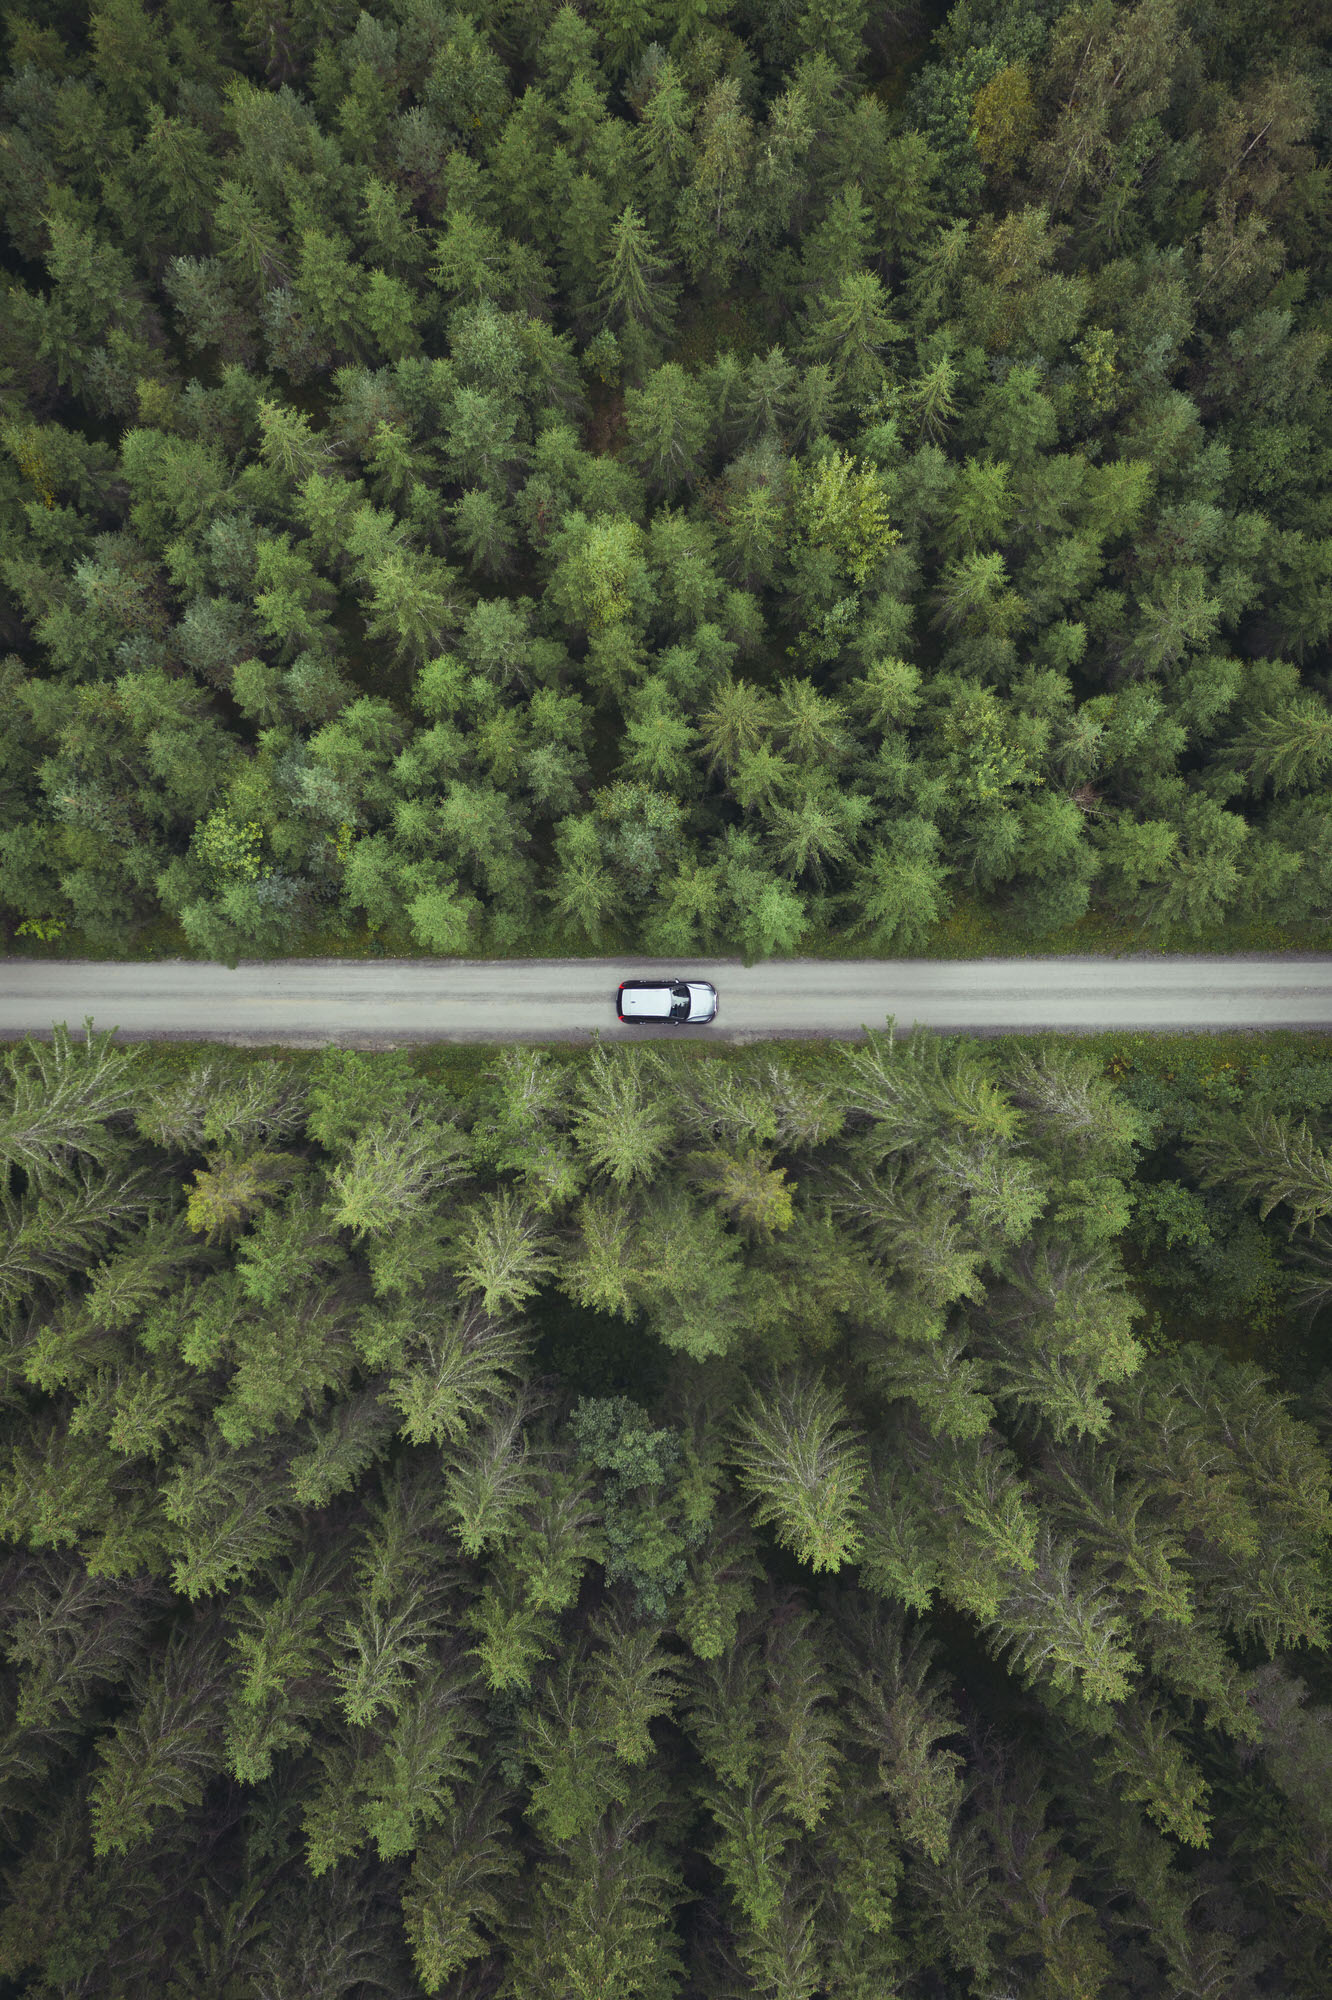 Aerial view of silver Volvo XC40 in the forests of Hamar, Norway.